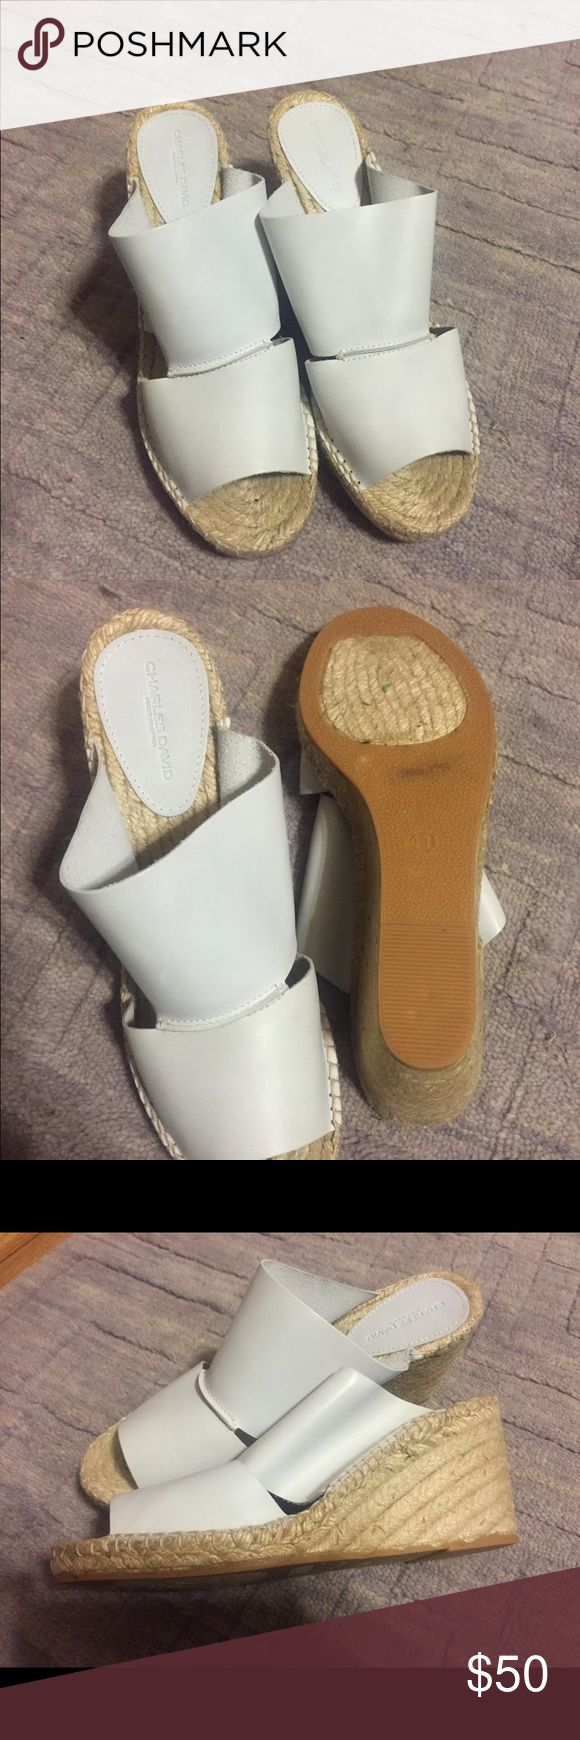 Charles David leather white espadrilles never worn Never worn new in box 3 inch comfortable heels Charles David Shoes Espadrilles